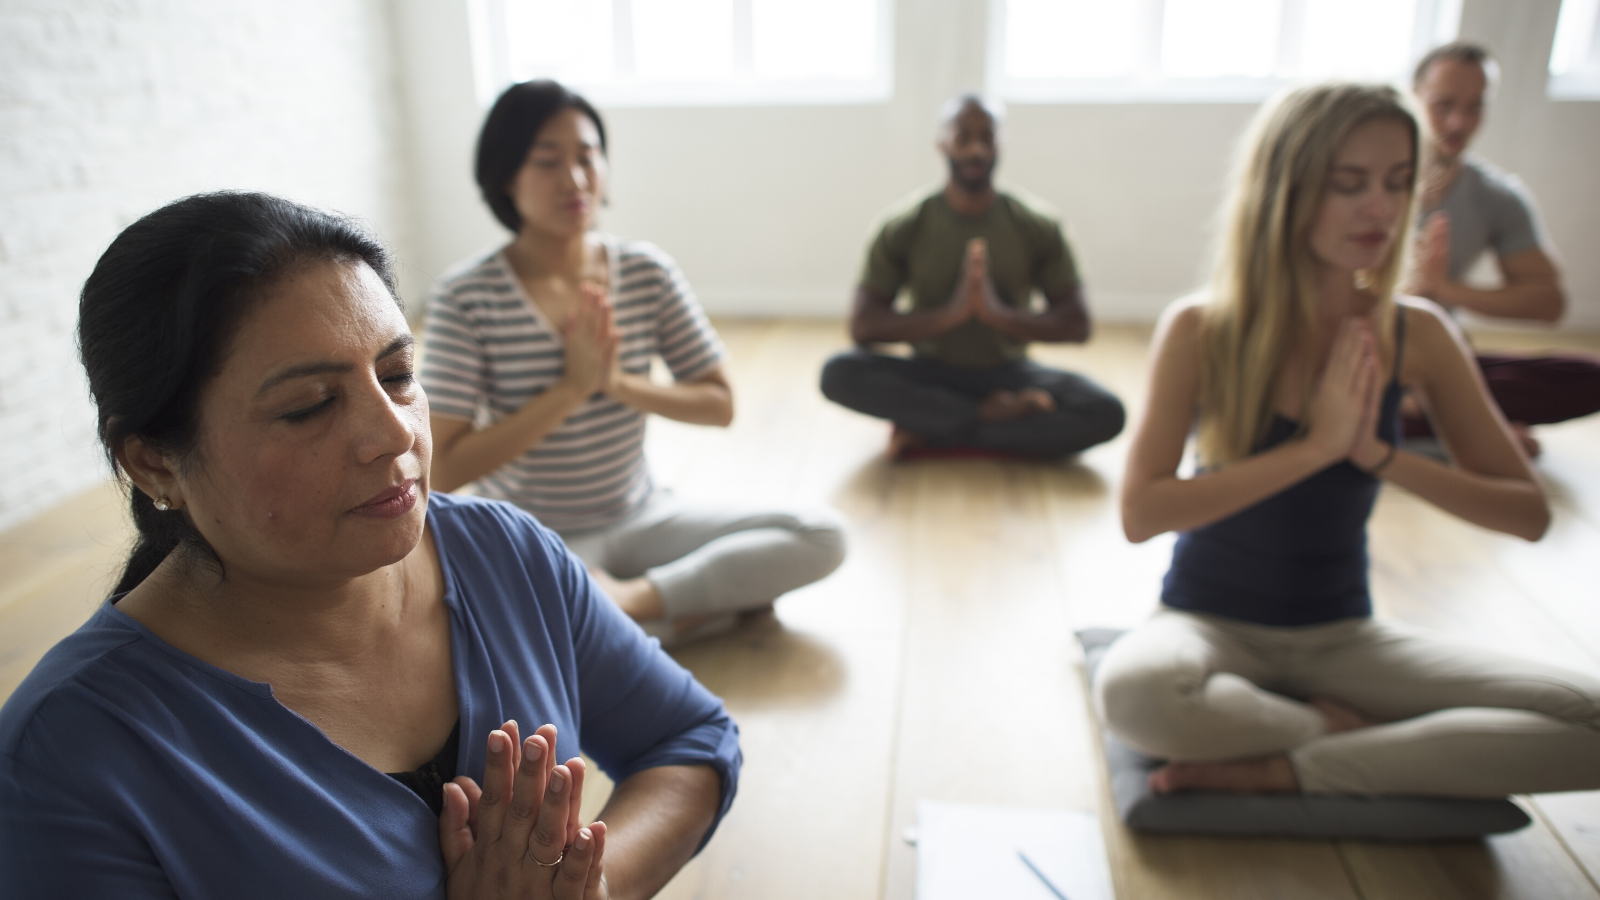 Group of diverse yoga students practicing meditation.